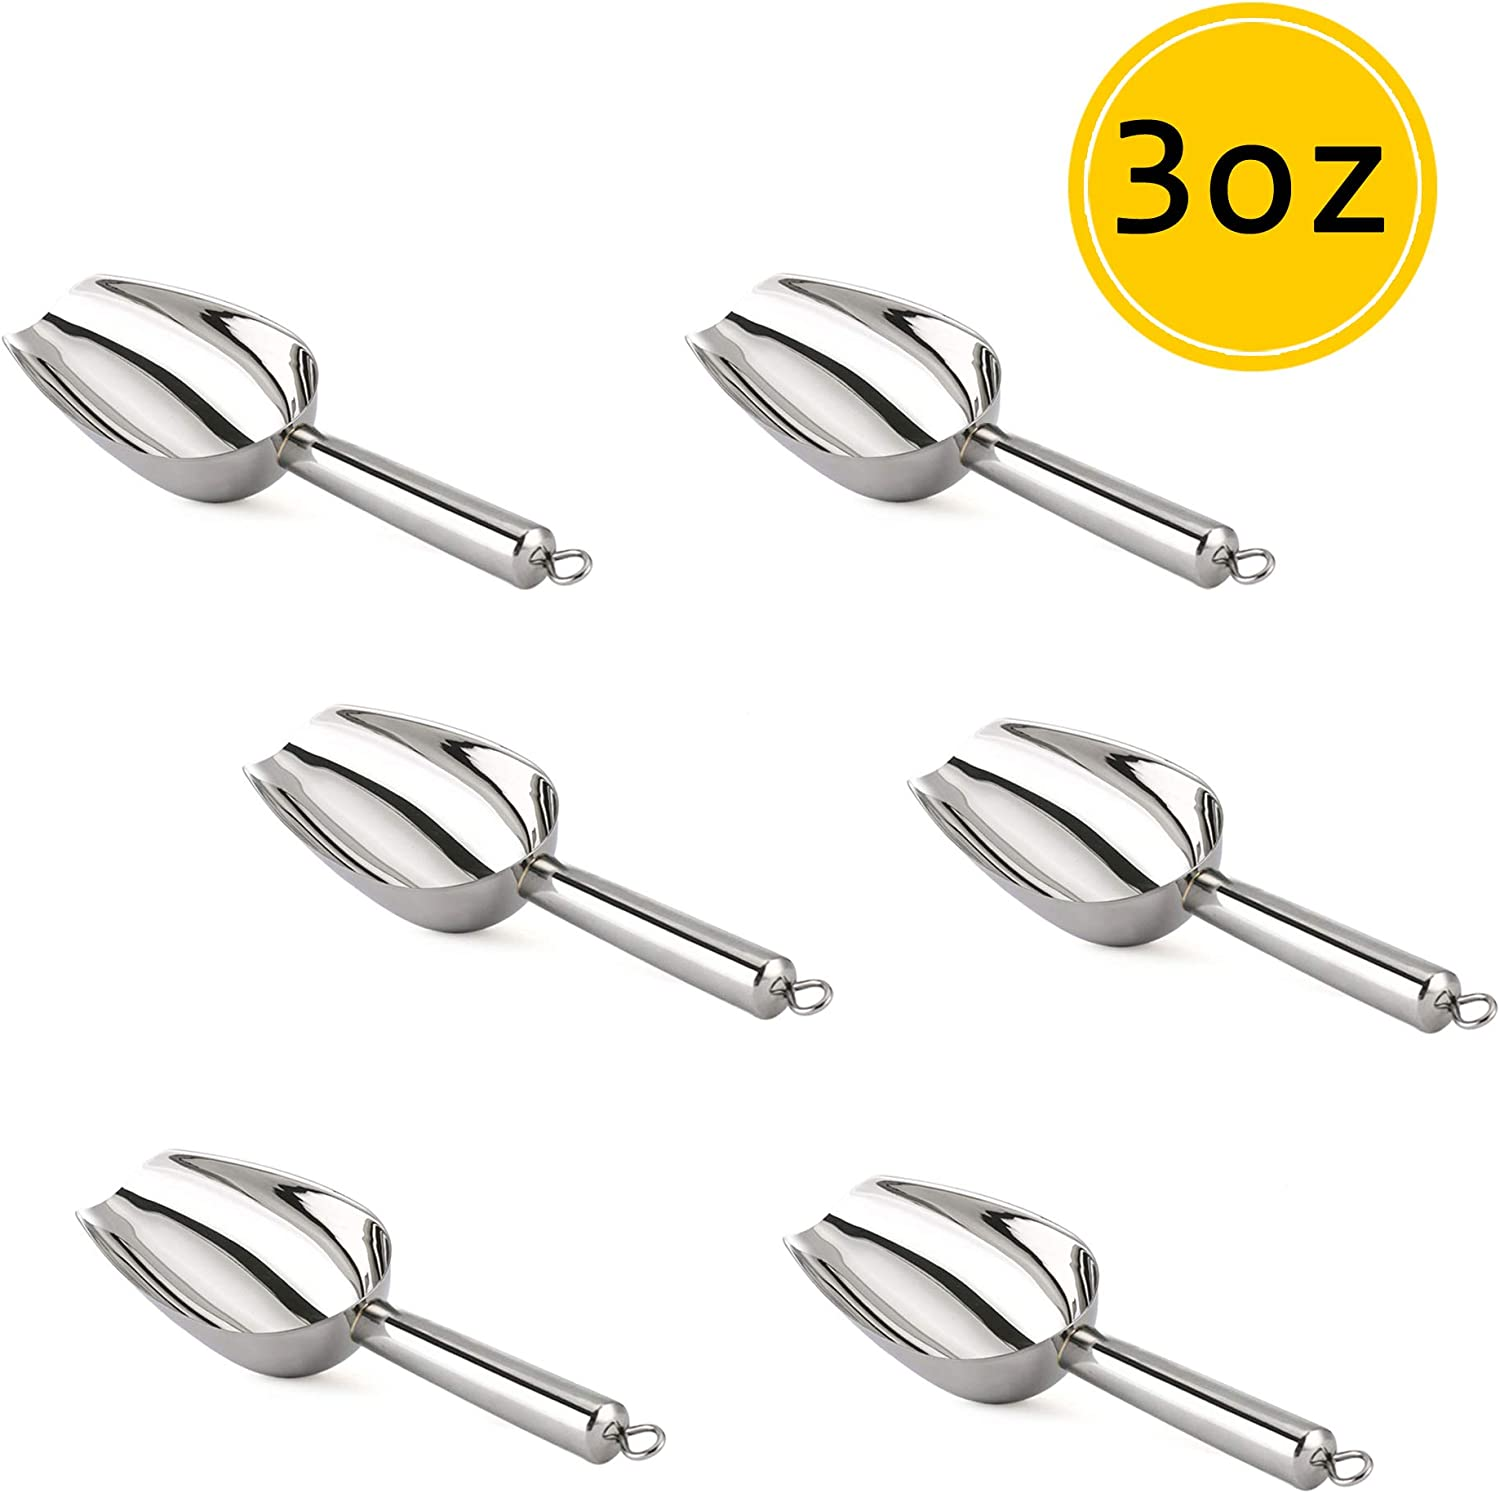 TeamFar Mini Scoop - 3 Oz, 6 PCS Canister Scoops Small Ice Candy Scoop Stainless Steel for Kitchen Dispenser Buffet Jars, Rust Free & Sturdy, Utility & Mirror Finish - Dishwasher Safe